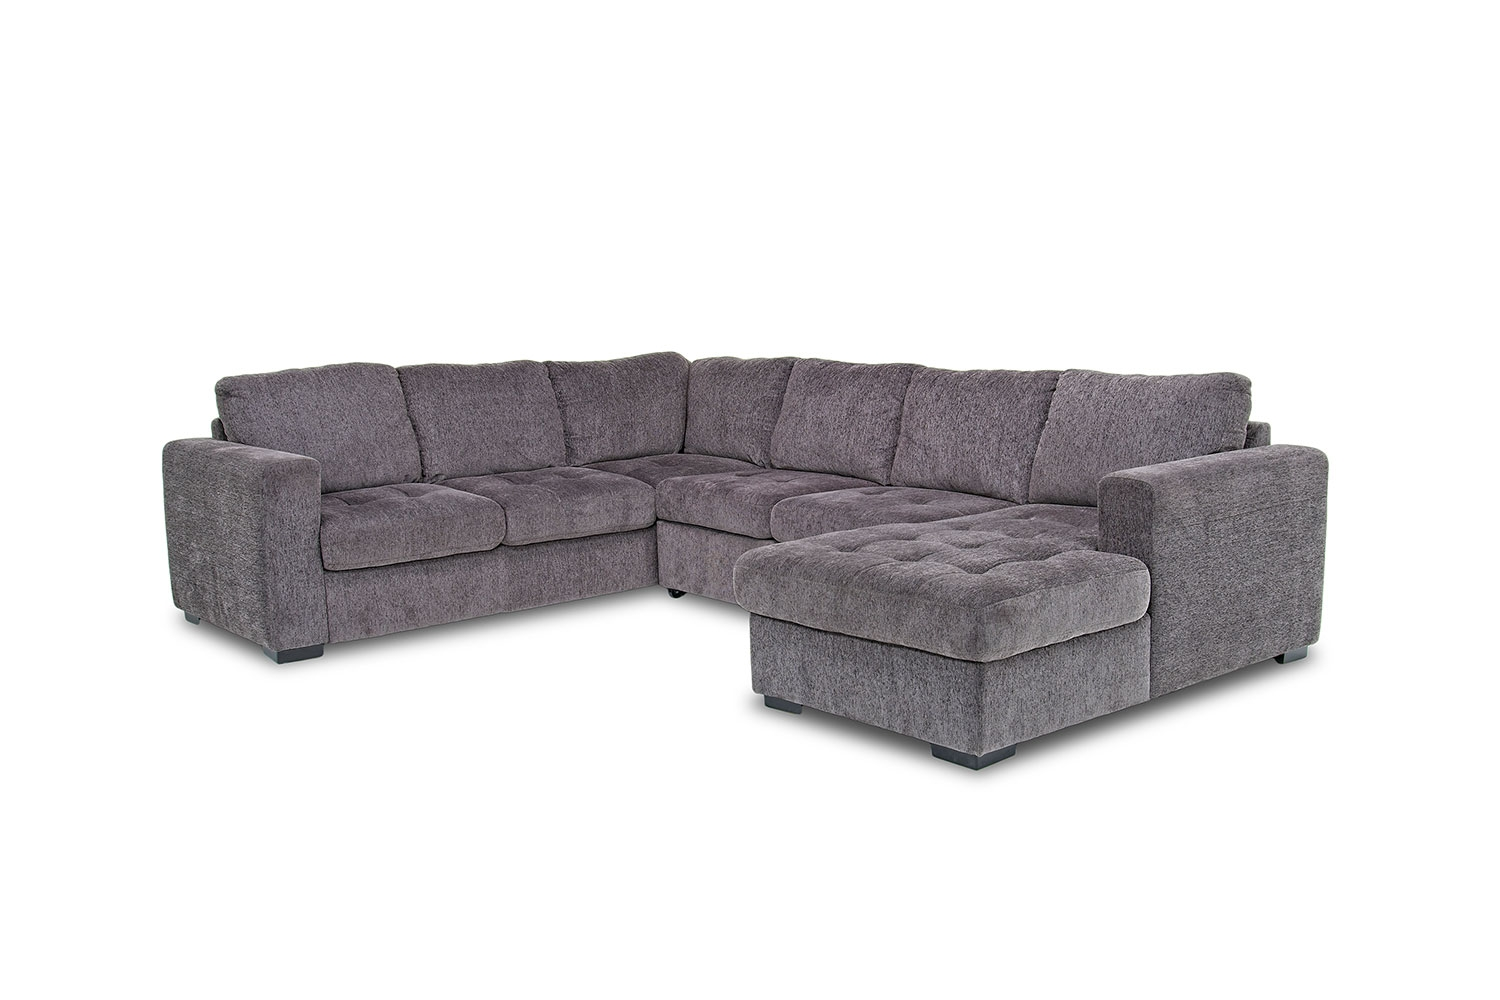 Sofa Ikea Oferta West Coast S Home Furniture Store Mor Furniture For Less